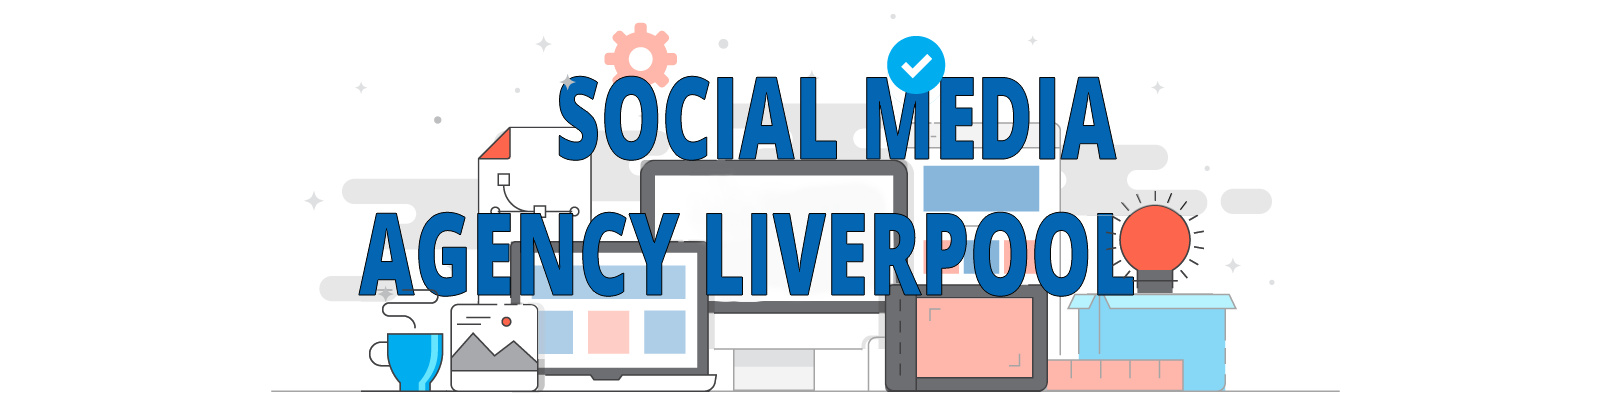 social media marketing agency in liverpool to improve social engagement